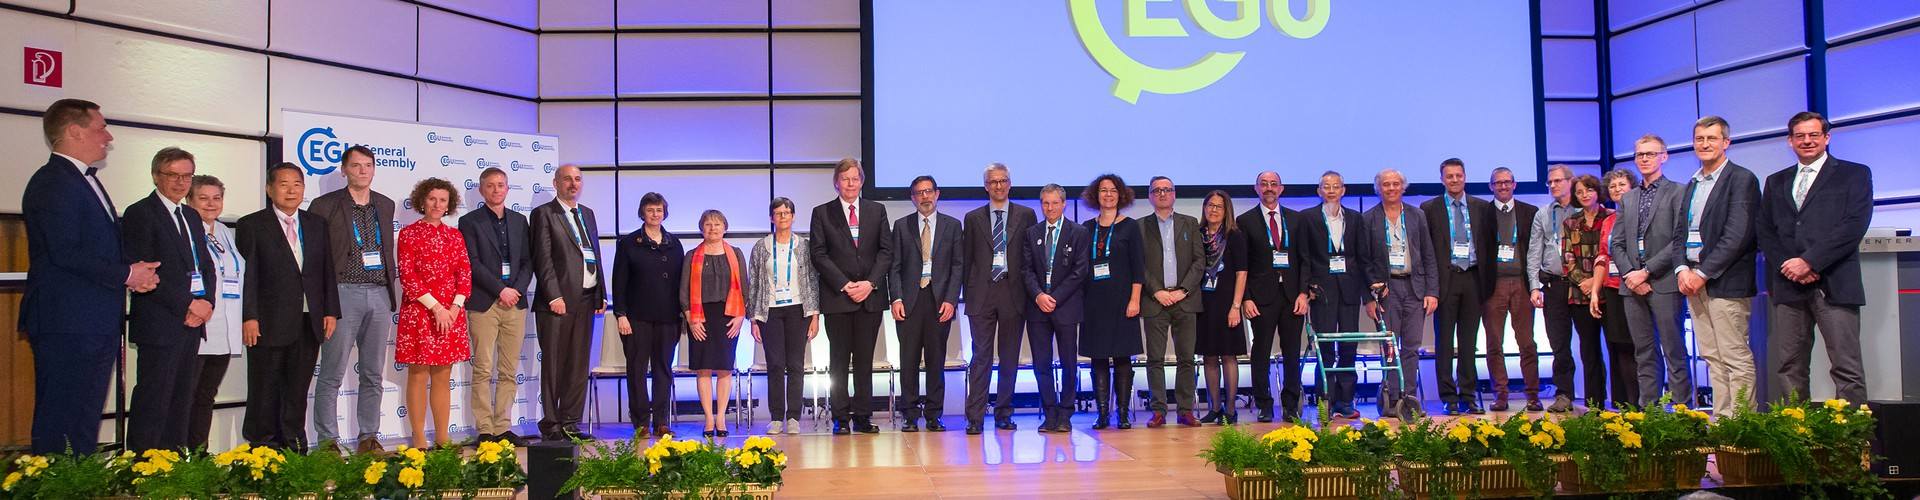 Some of the 2019 awardees with the EGU President and Vice-President at the 2019 EGU Awards Ceremony. (Credit: Photo Pfluegl)